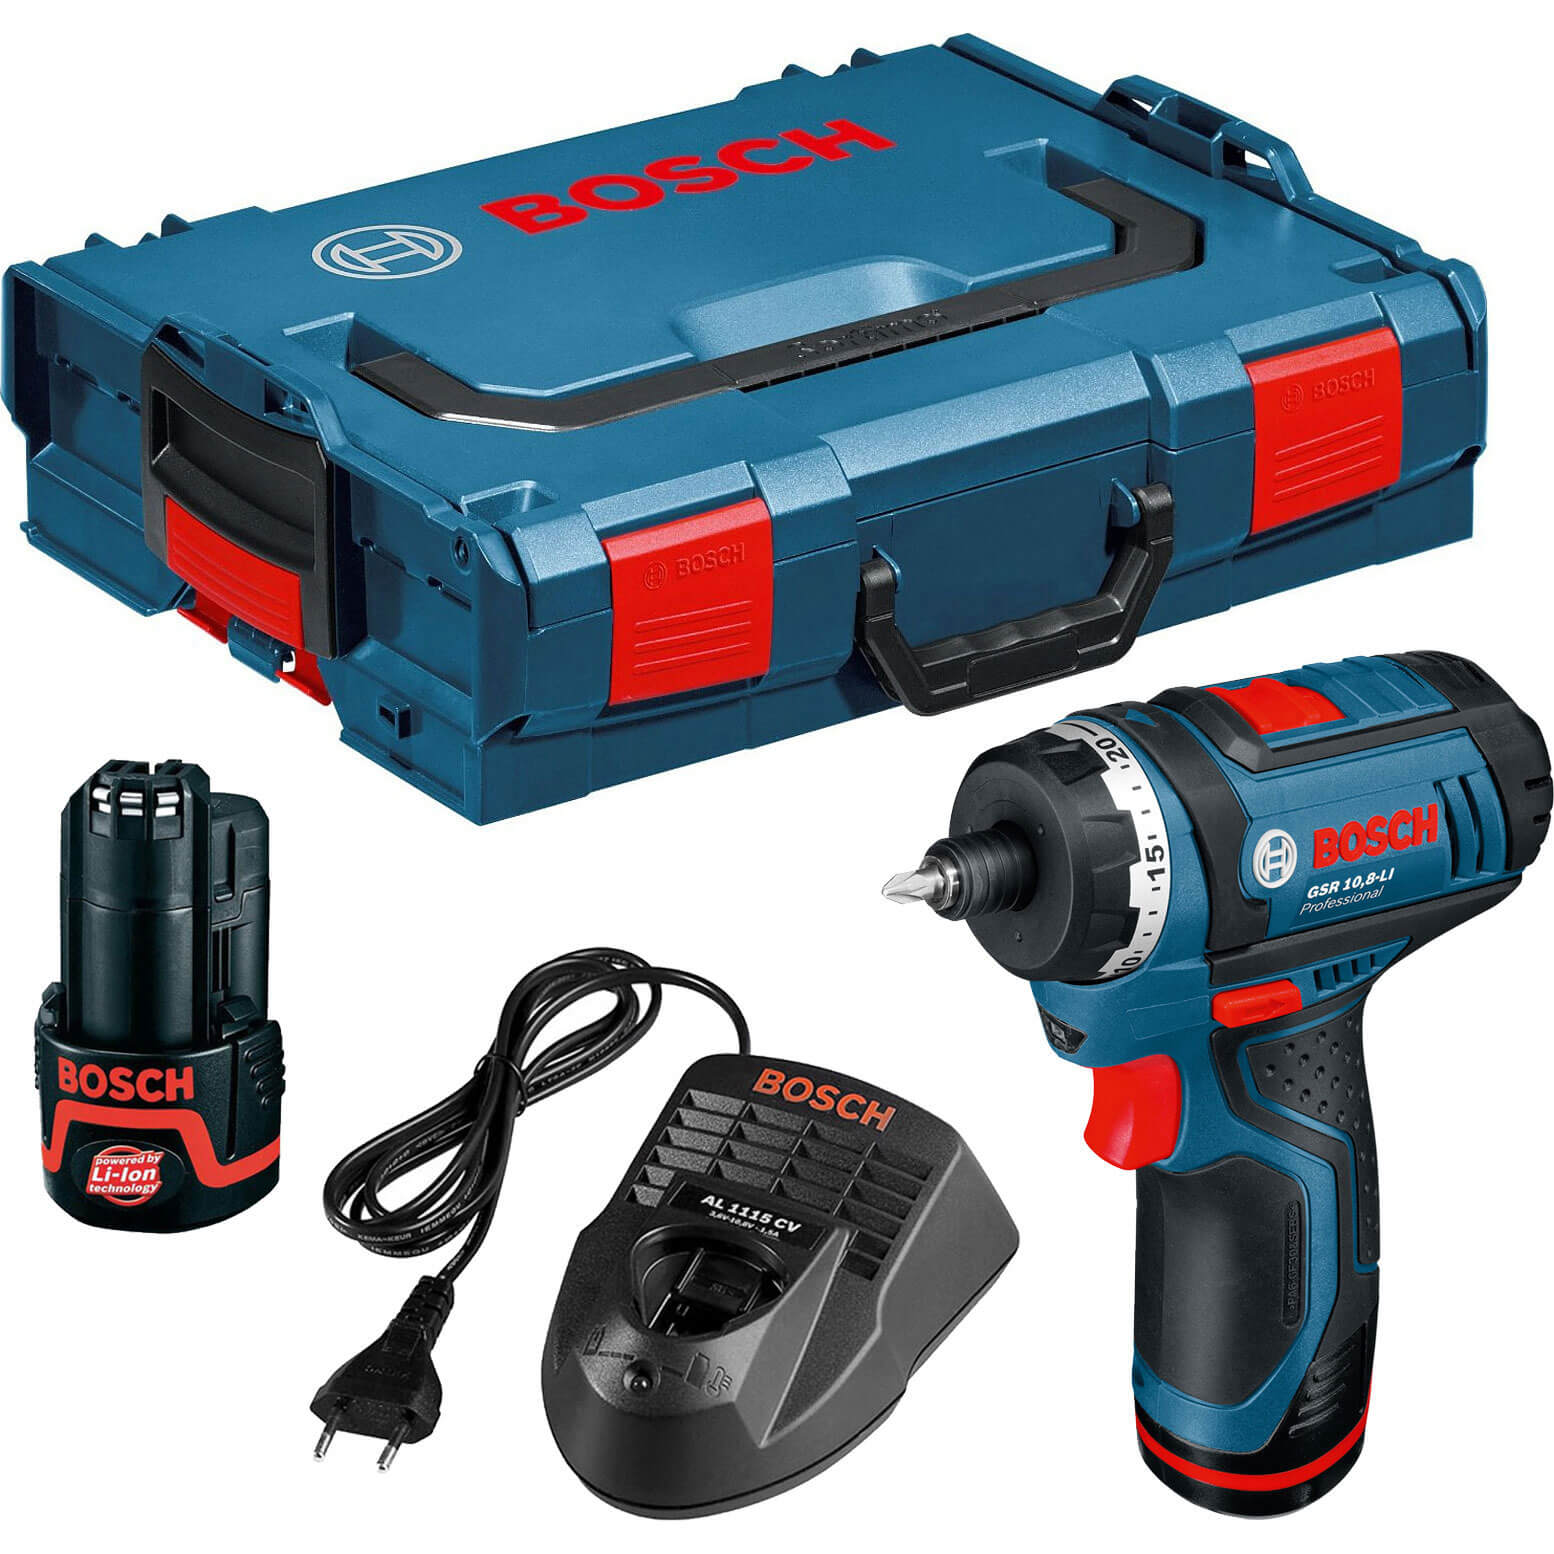 bosch gsr 10 8 li cordless 2 speed drill driver with. Black Bedroom Furniture Sets. Home Design Ideas